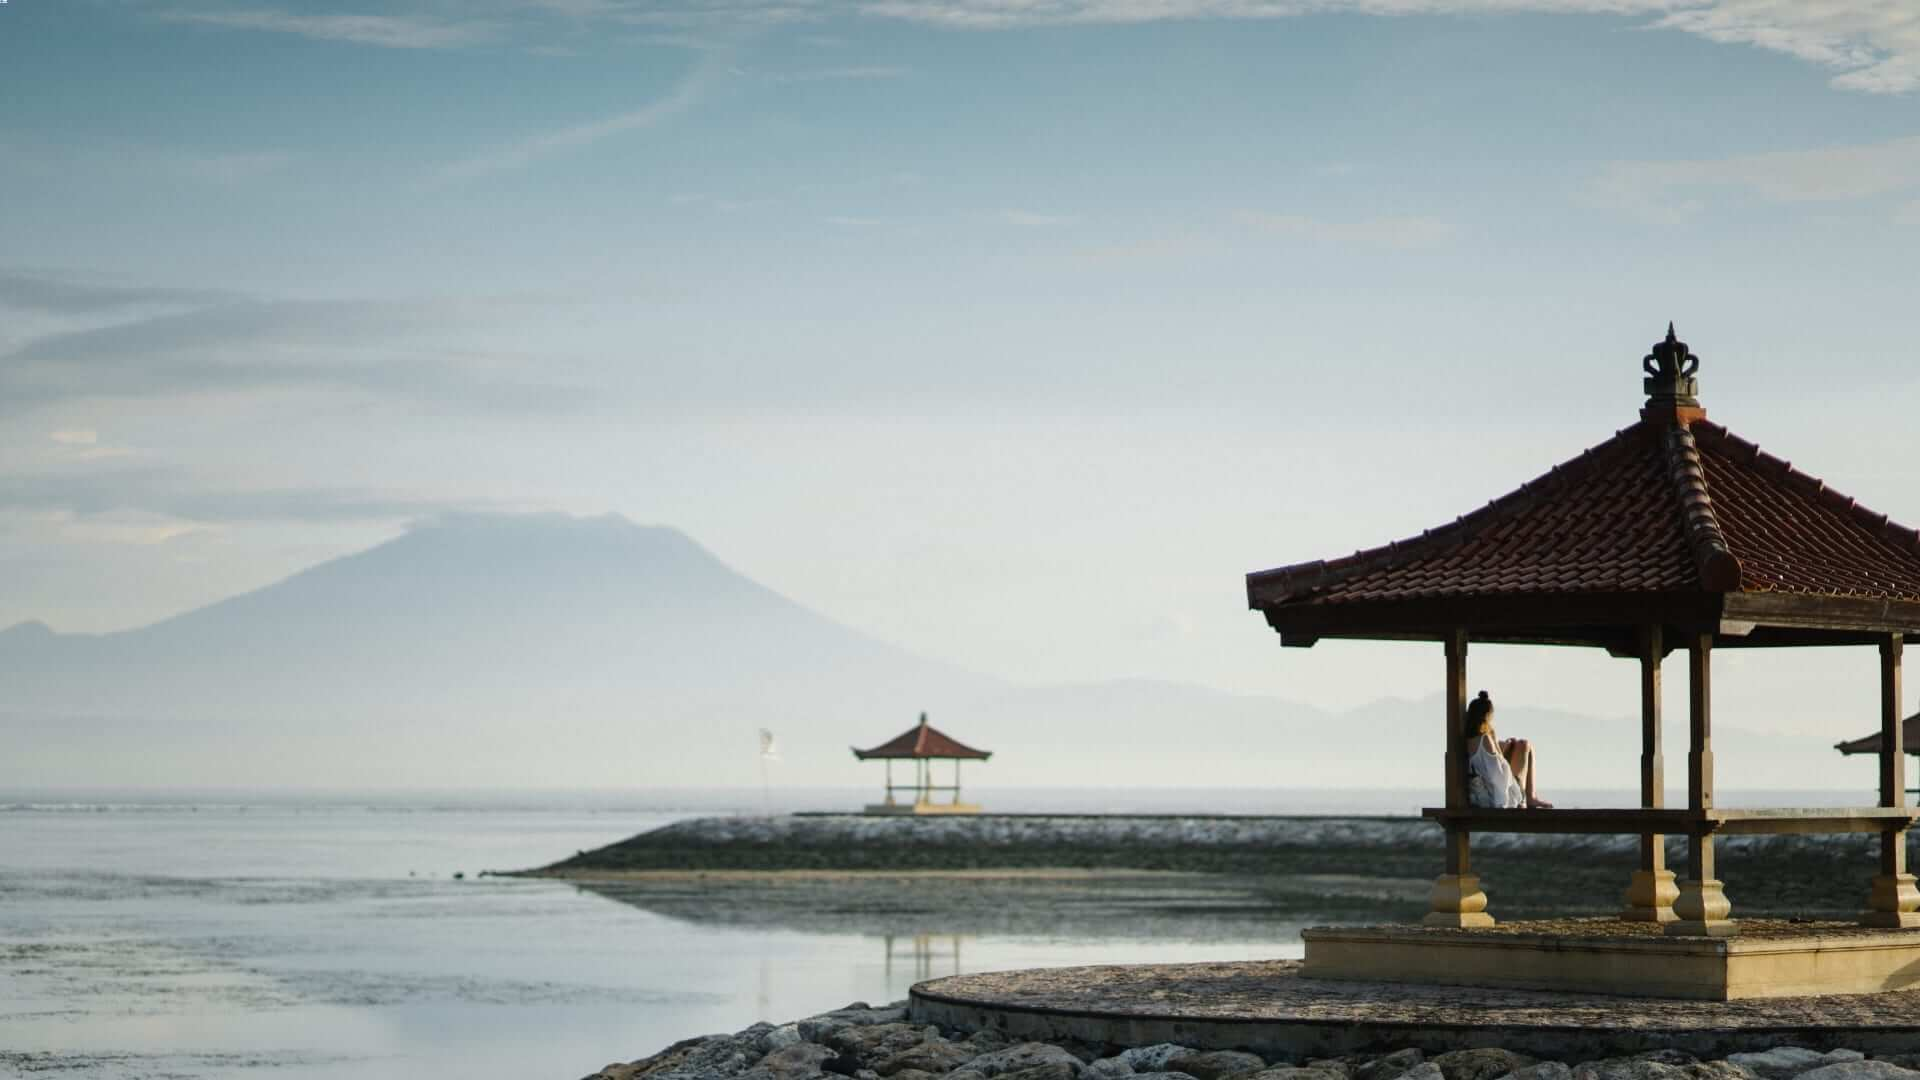 A person is sitting on a gazebo next to the water during sunrise in Bali.